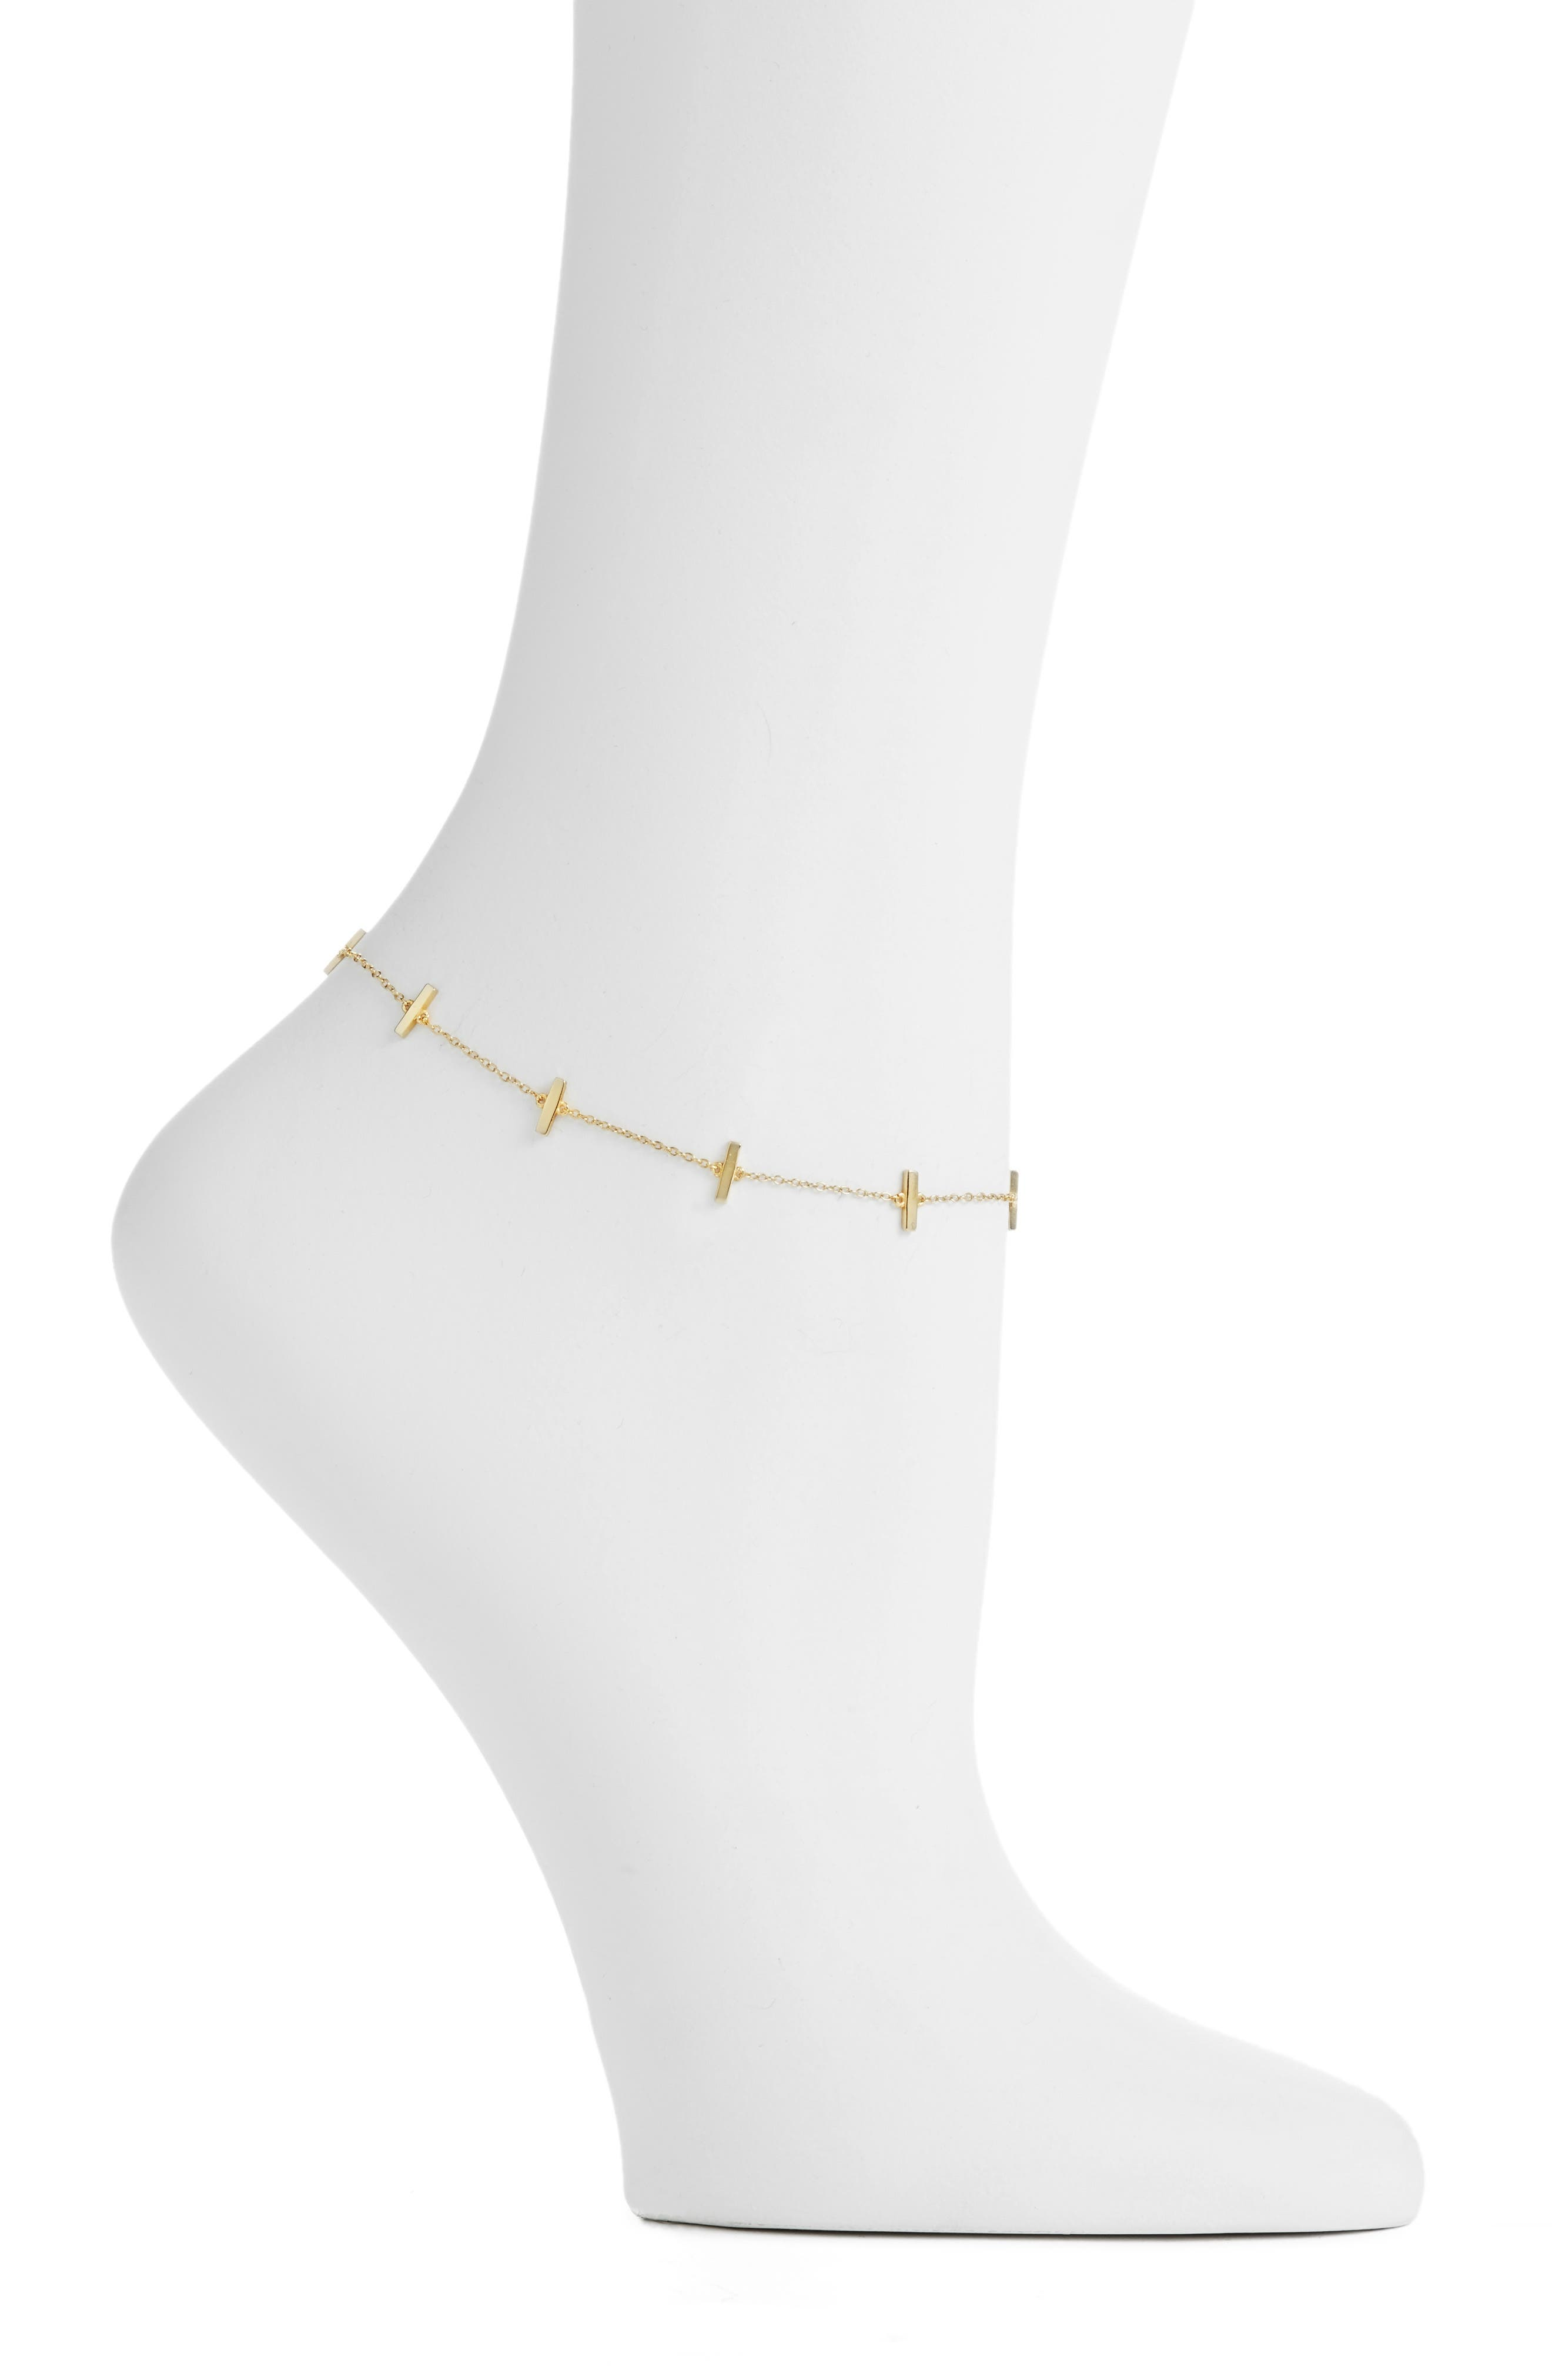 silver jewellery buy elegant white india oblacoder online for gold indian jaipur women plated studded rhinestone anklets anklet